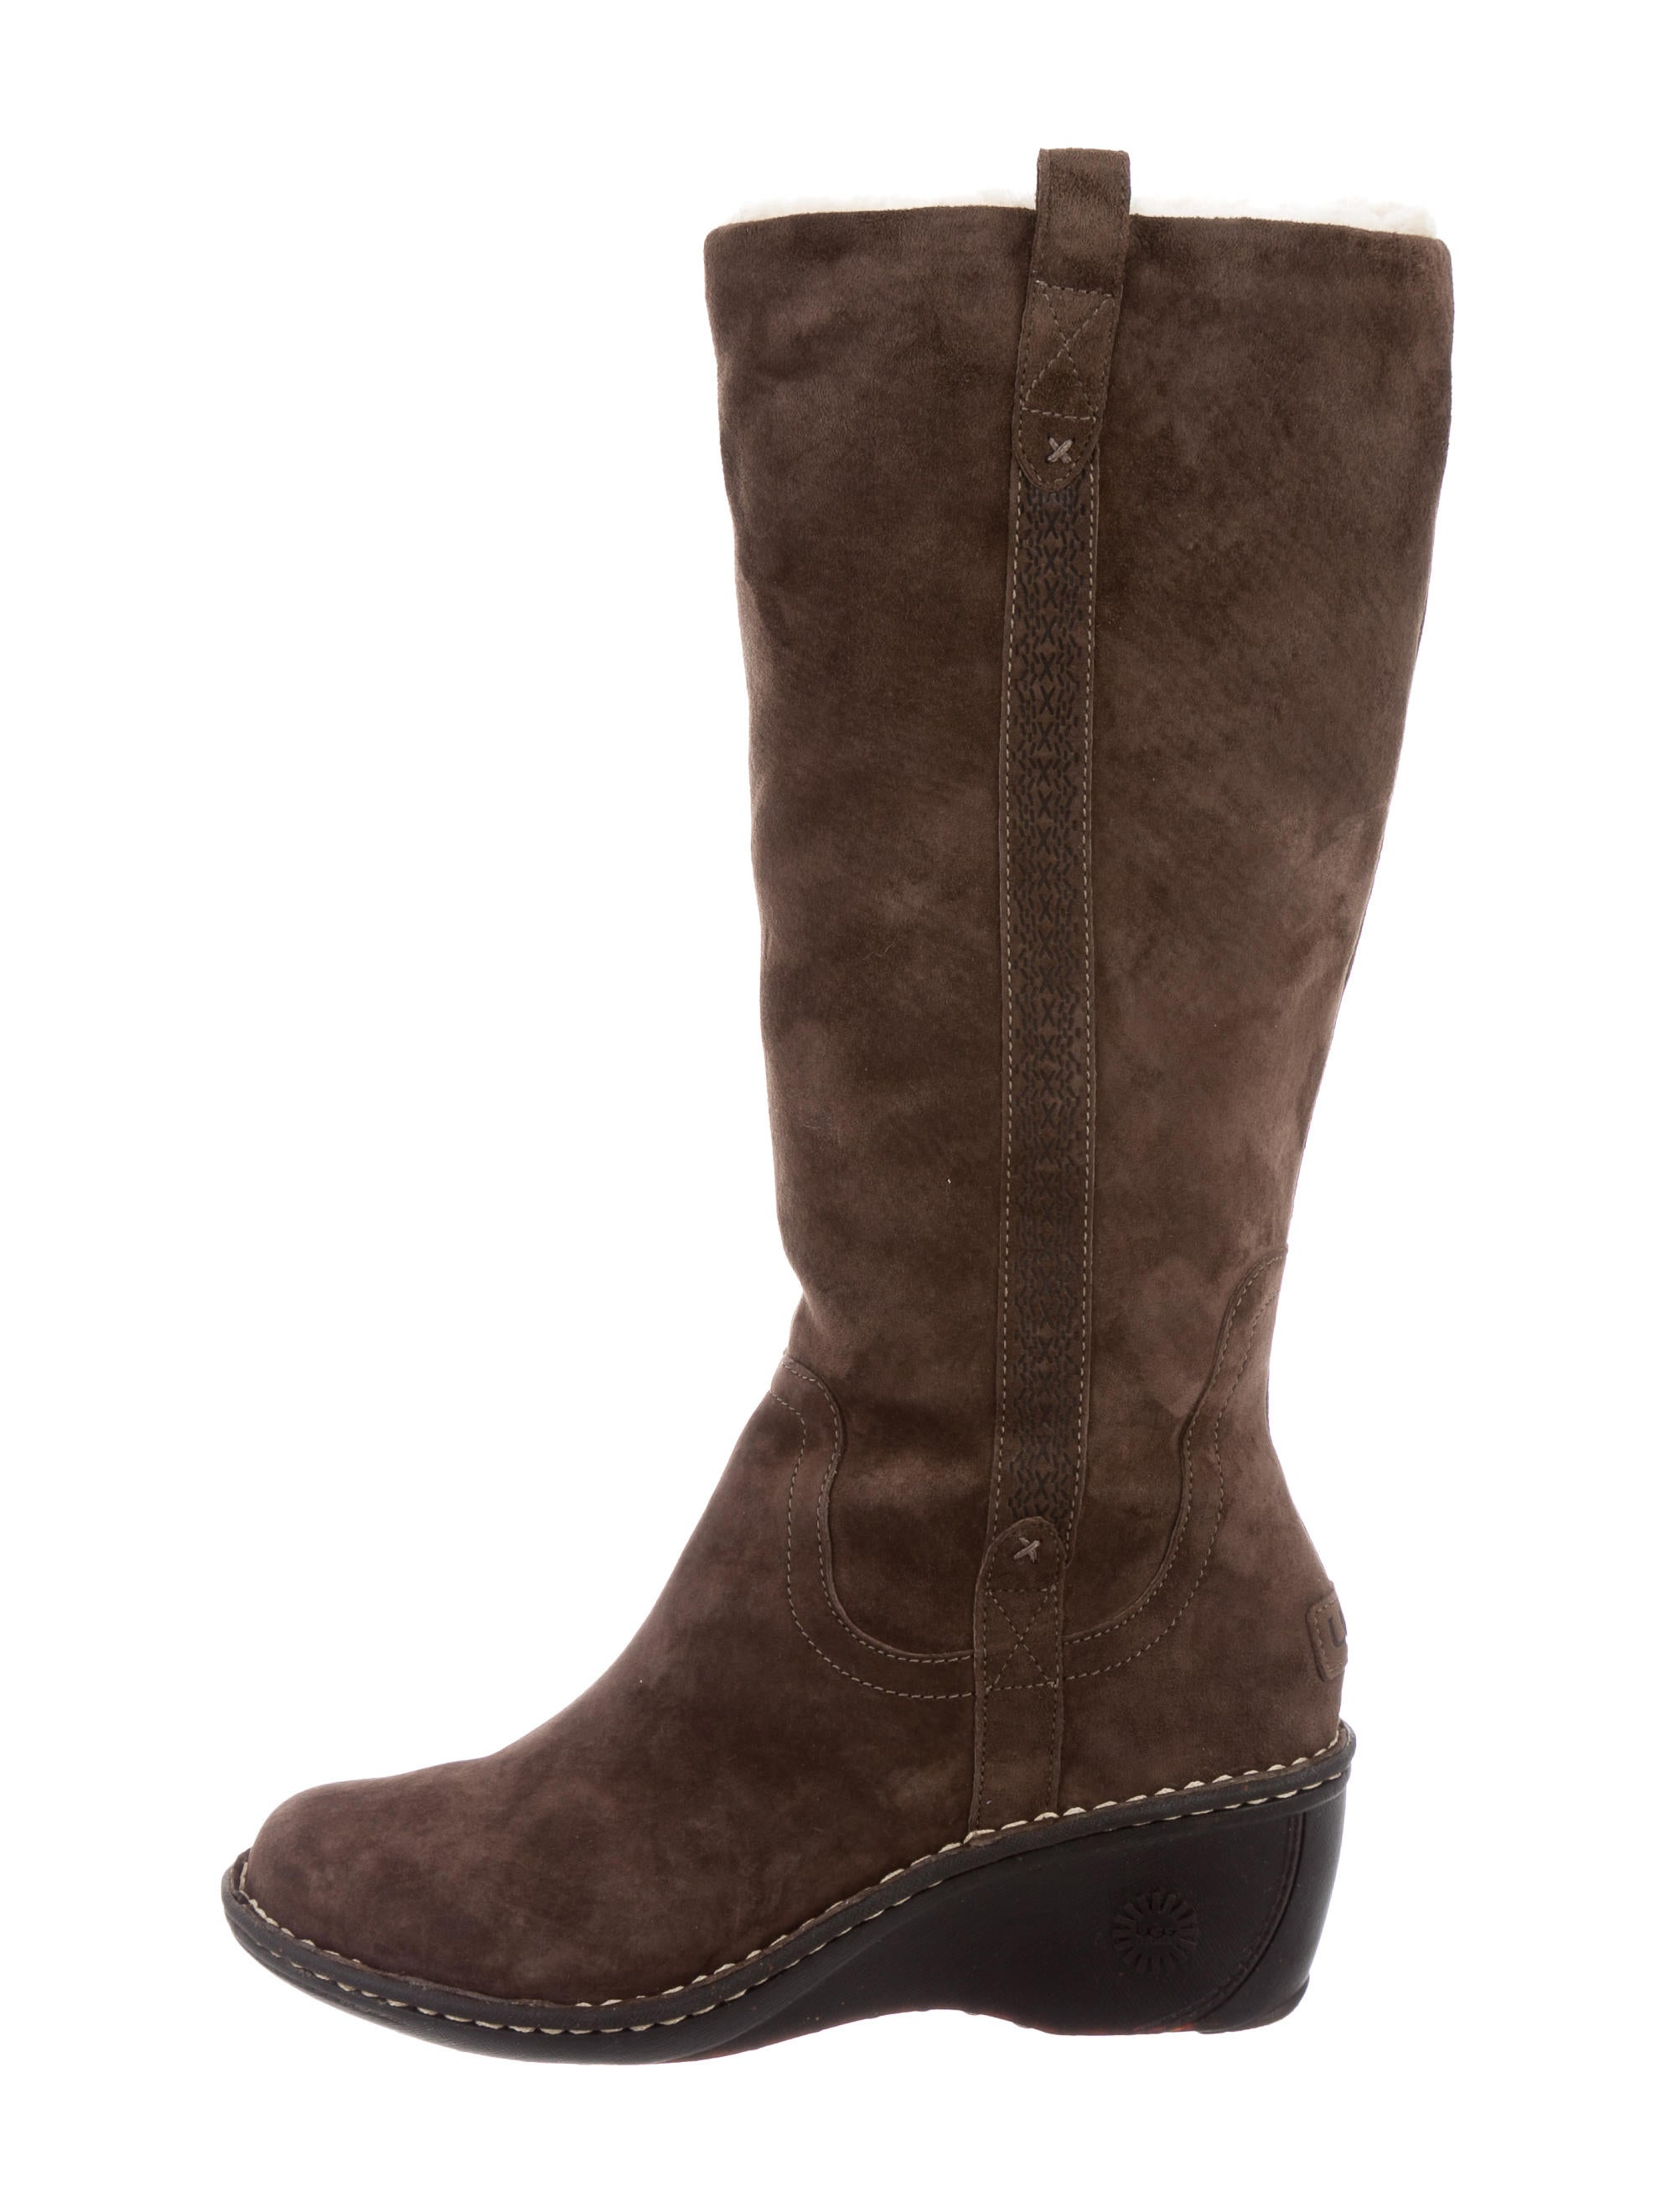 ugg australia suede mid calf boots shoes wuugg21247